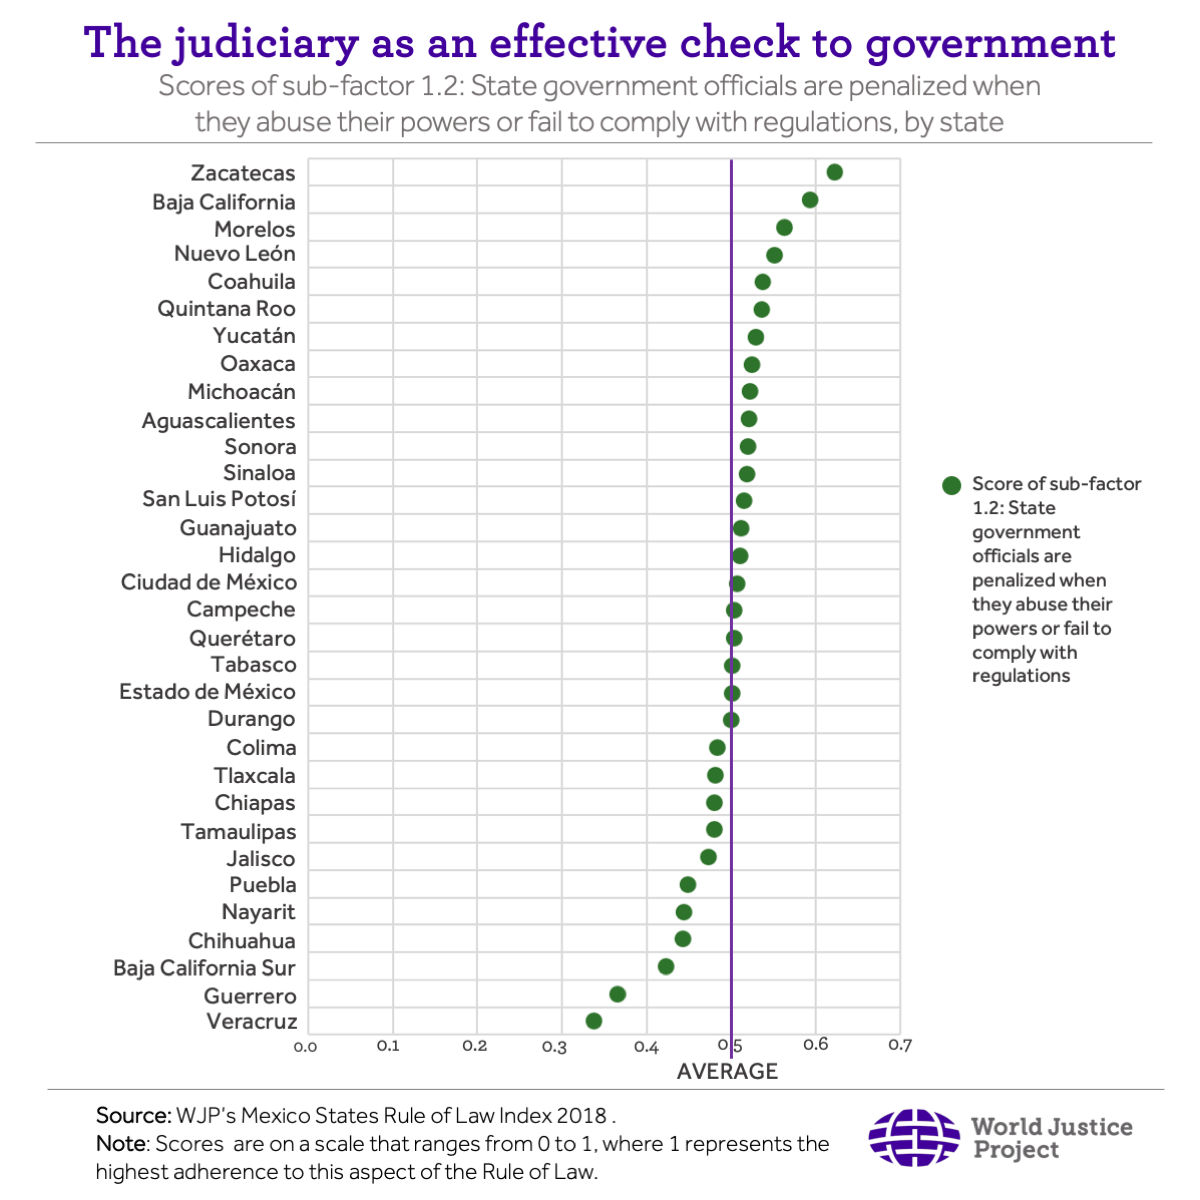 The judiciary as an effective check to government